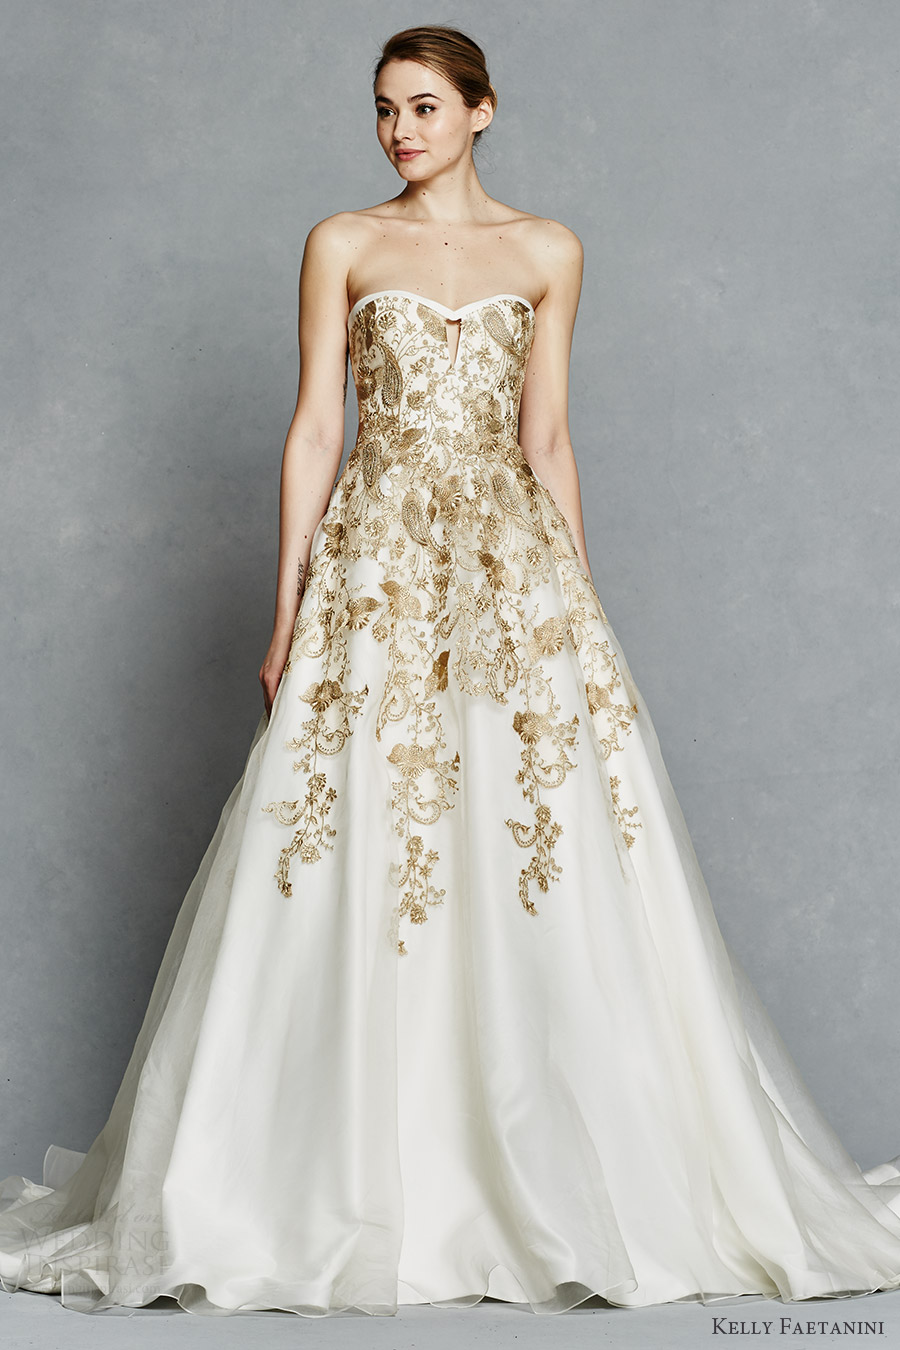 Kelly faetanini spring wedding dresses